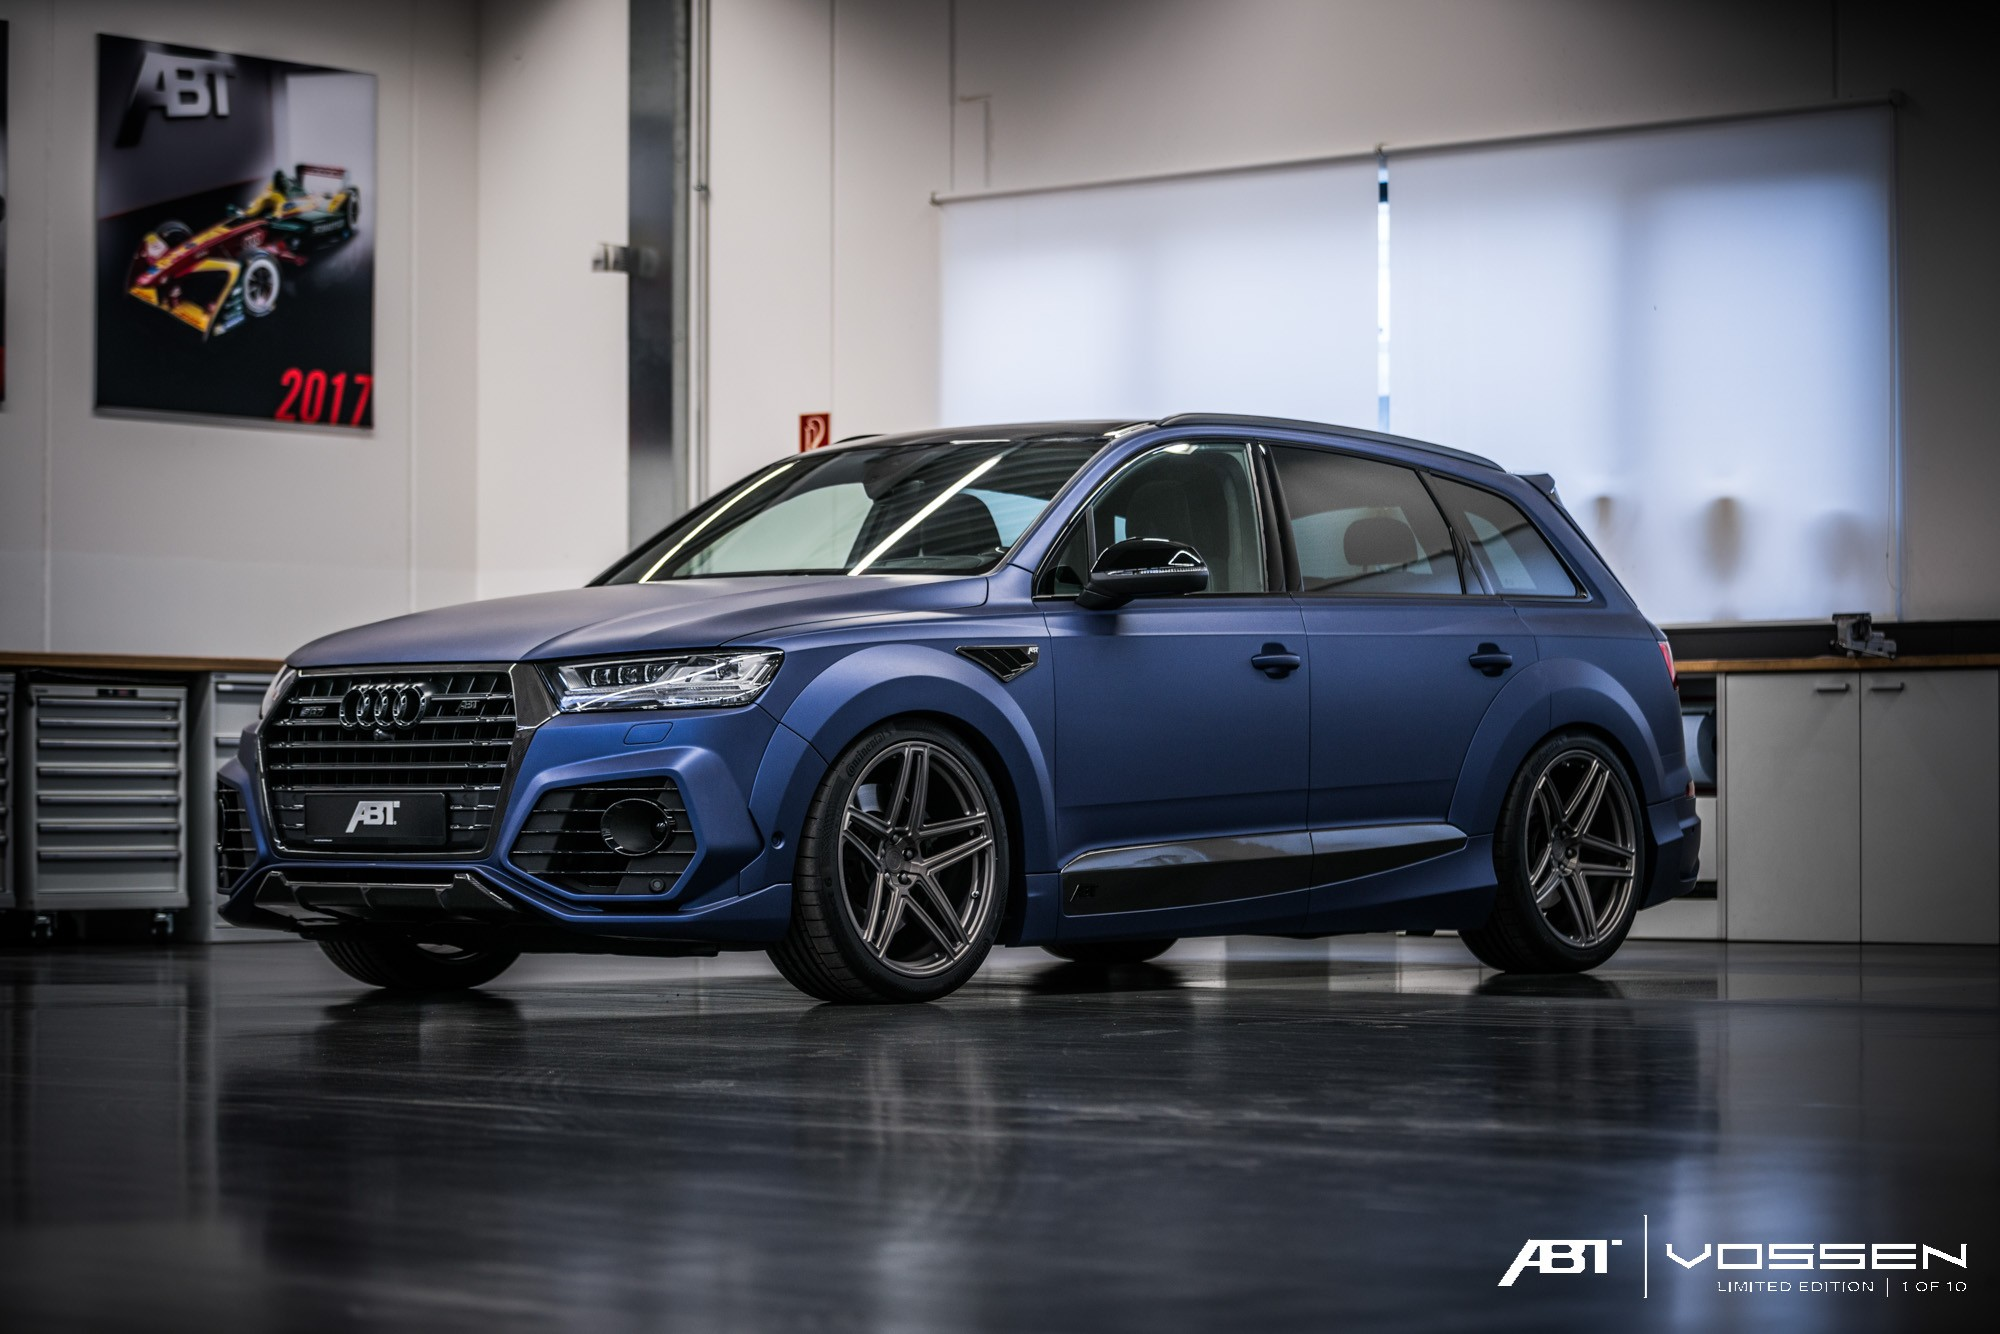 2018 Black Golf R >> Audi Q7 and SQ7 Get ABT Widebody Kit and Vossen Forged Wheels - autoevolution